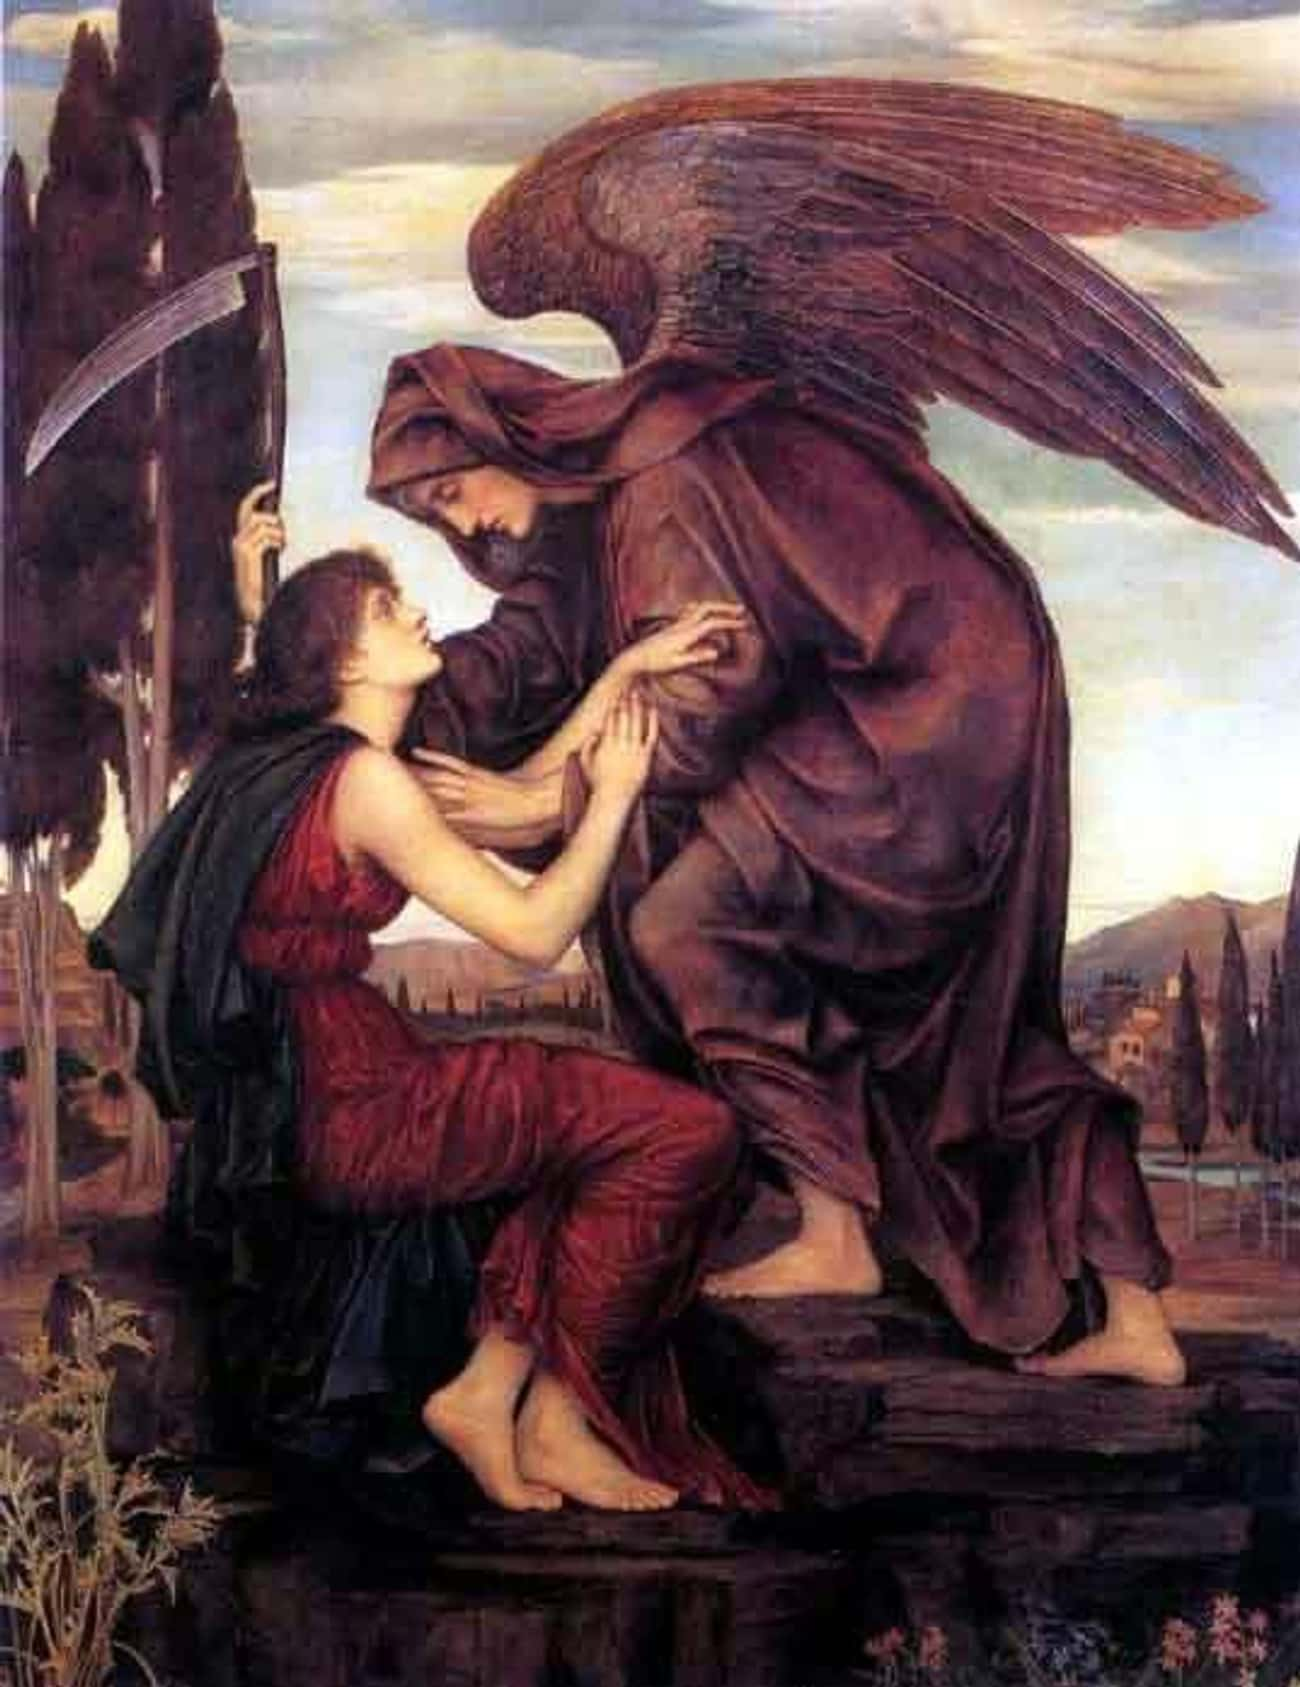 Samael, The Angel Of Death, Kills Only At The Behest Of God